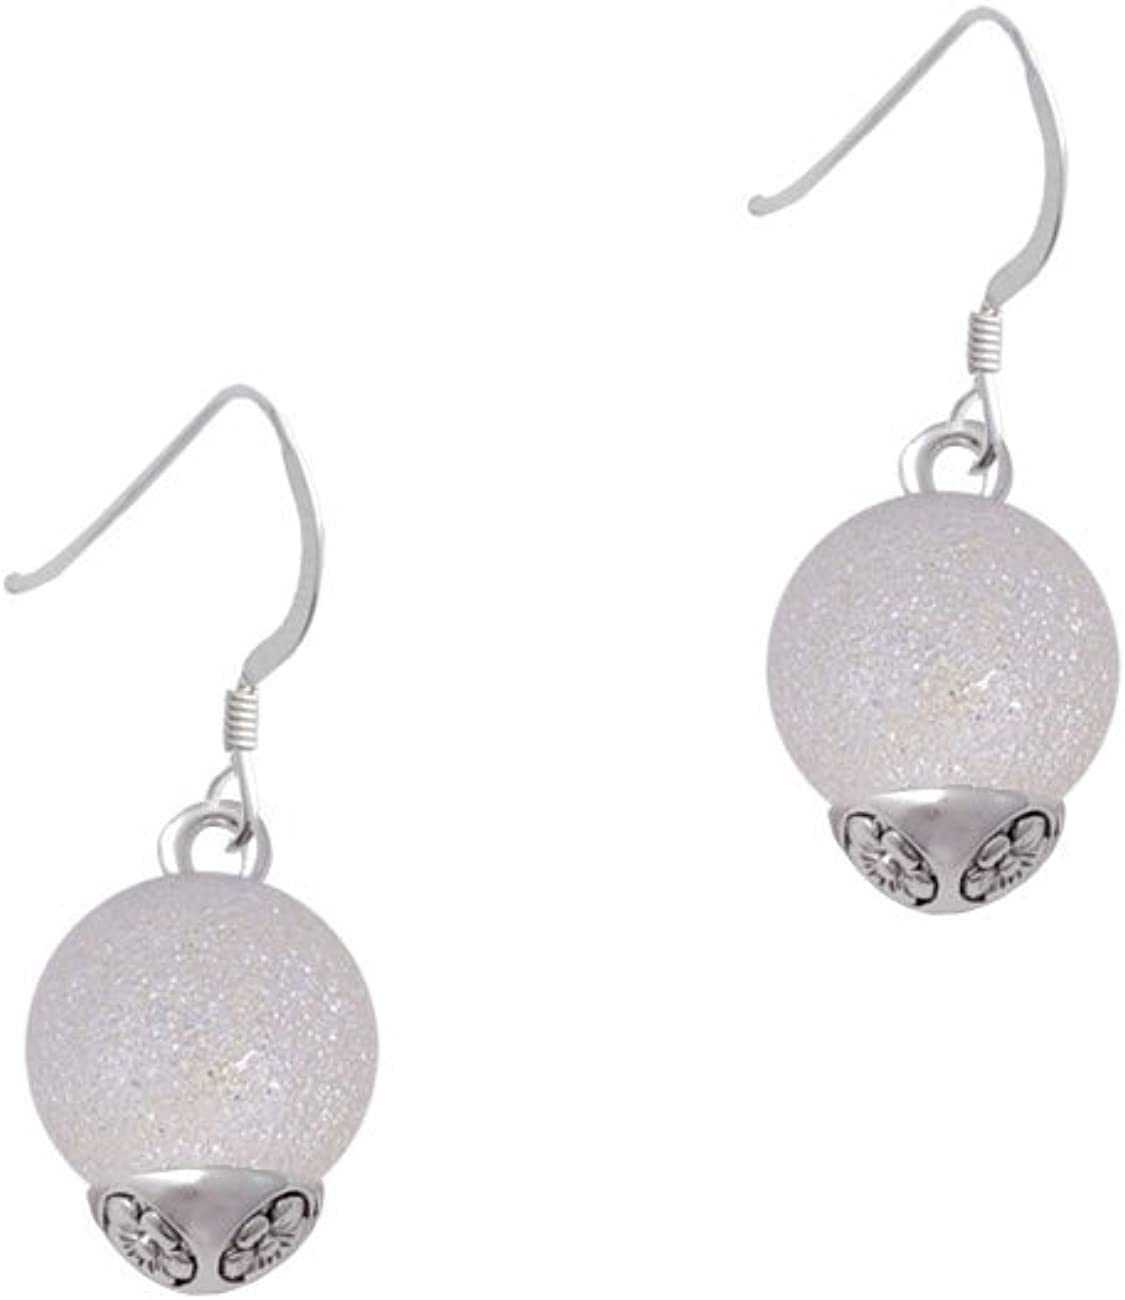 12mm Stardust Indefinitely Round Special Campaign Spinner French - Earrings